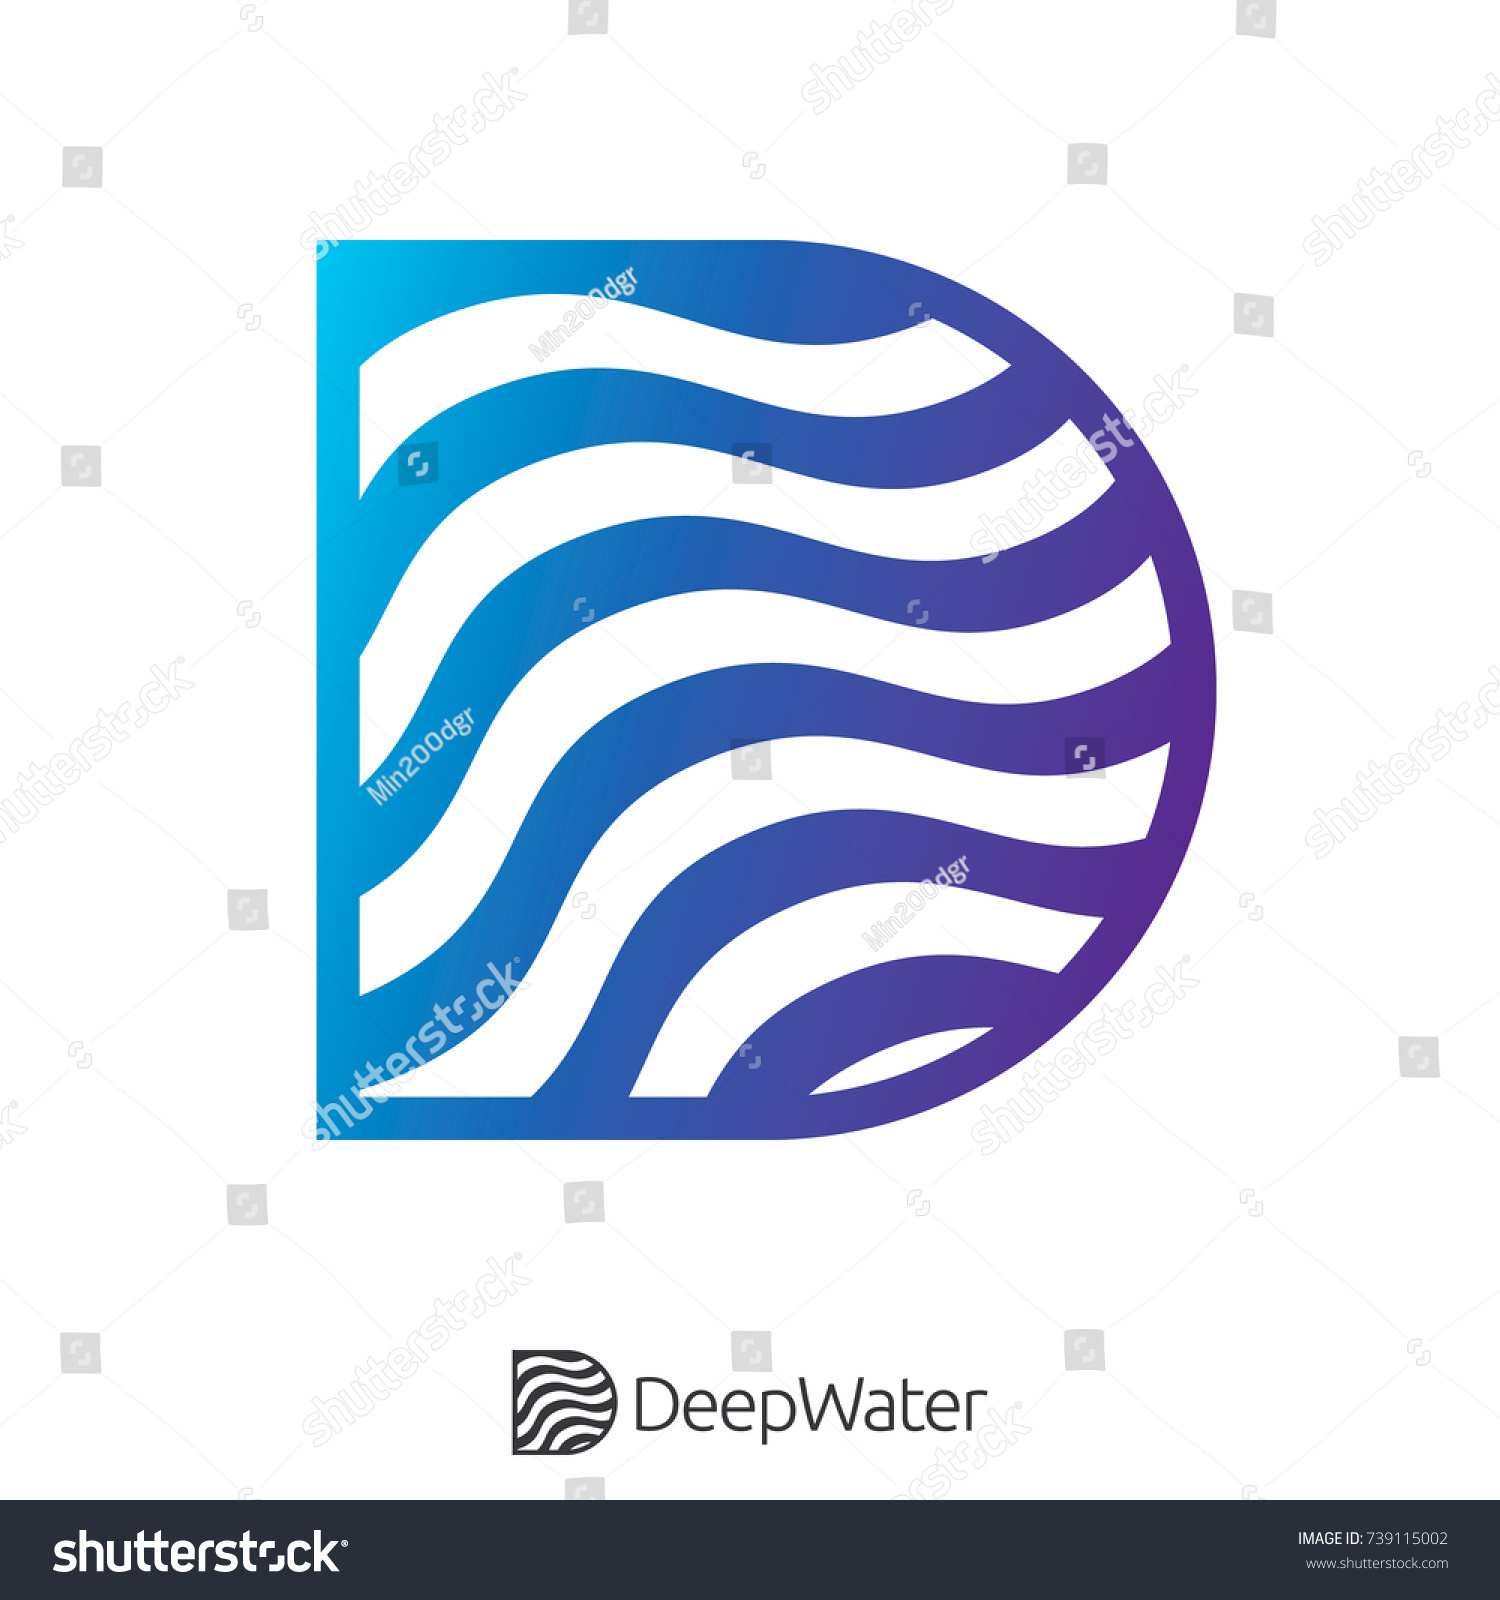 Letter d water wave river ocean stock vector 739115002 shutterstock letter d water wave river ocean logo symbol for internet data concept or nature services biocorpaavc Gallery